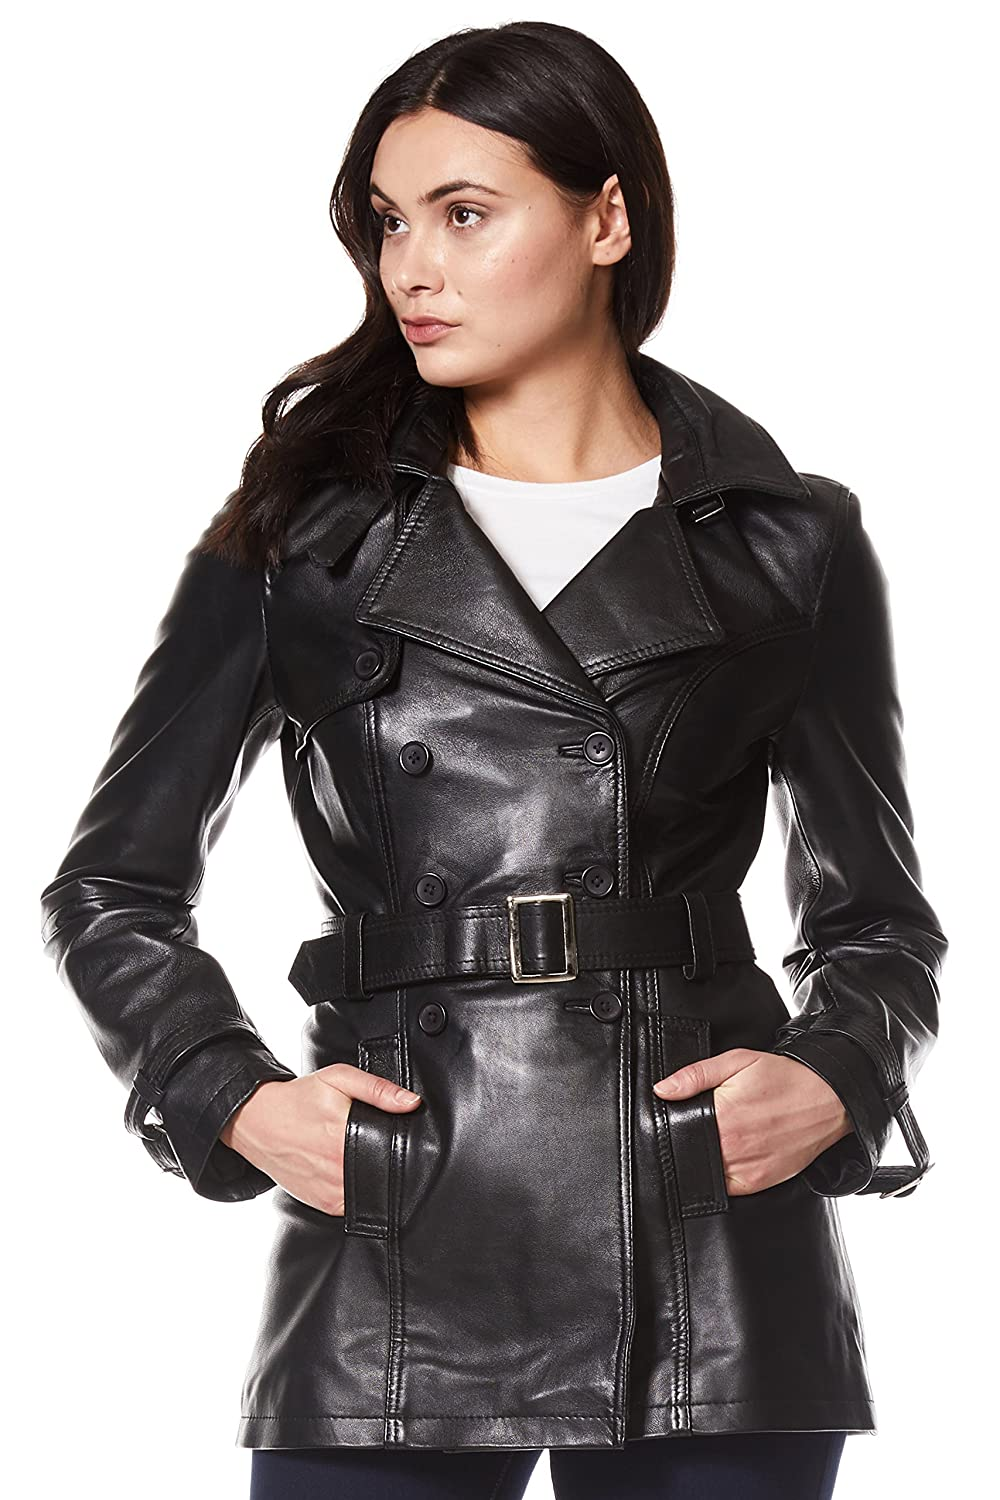 select for genuine purchase cheap wide selection of designs 'Trench' Ladies Black Classic Mid-Length Designer Real Leather Jacket Coat  1123